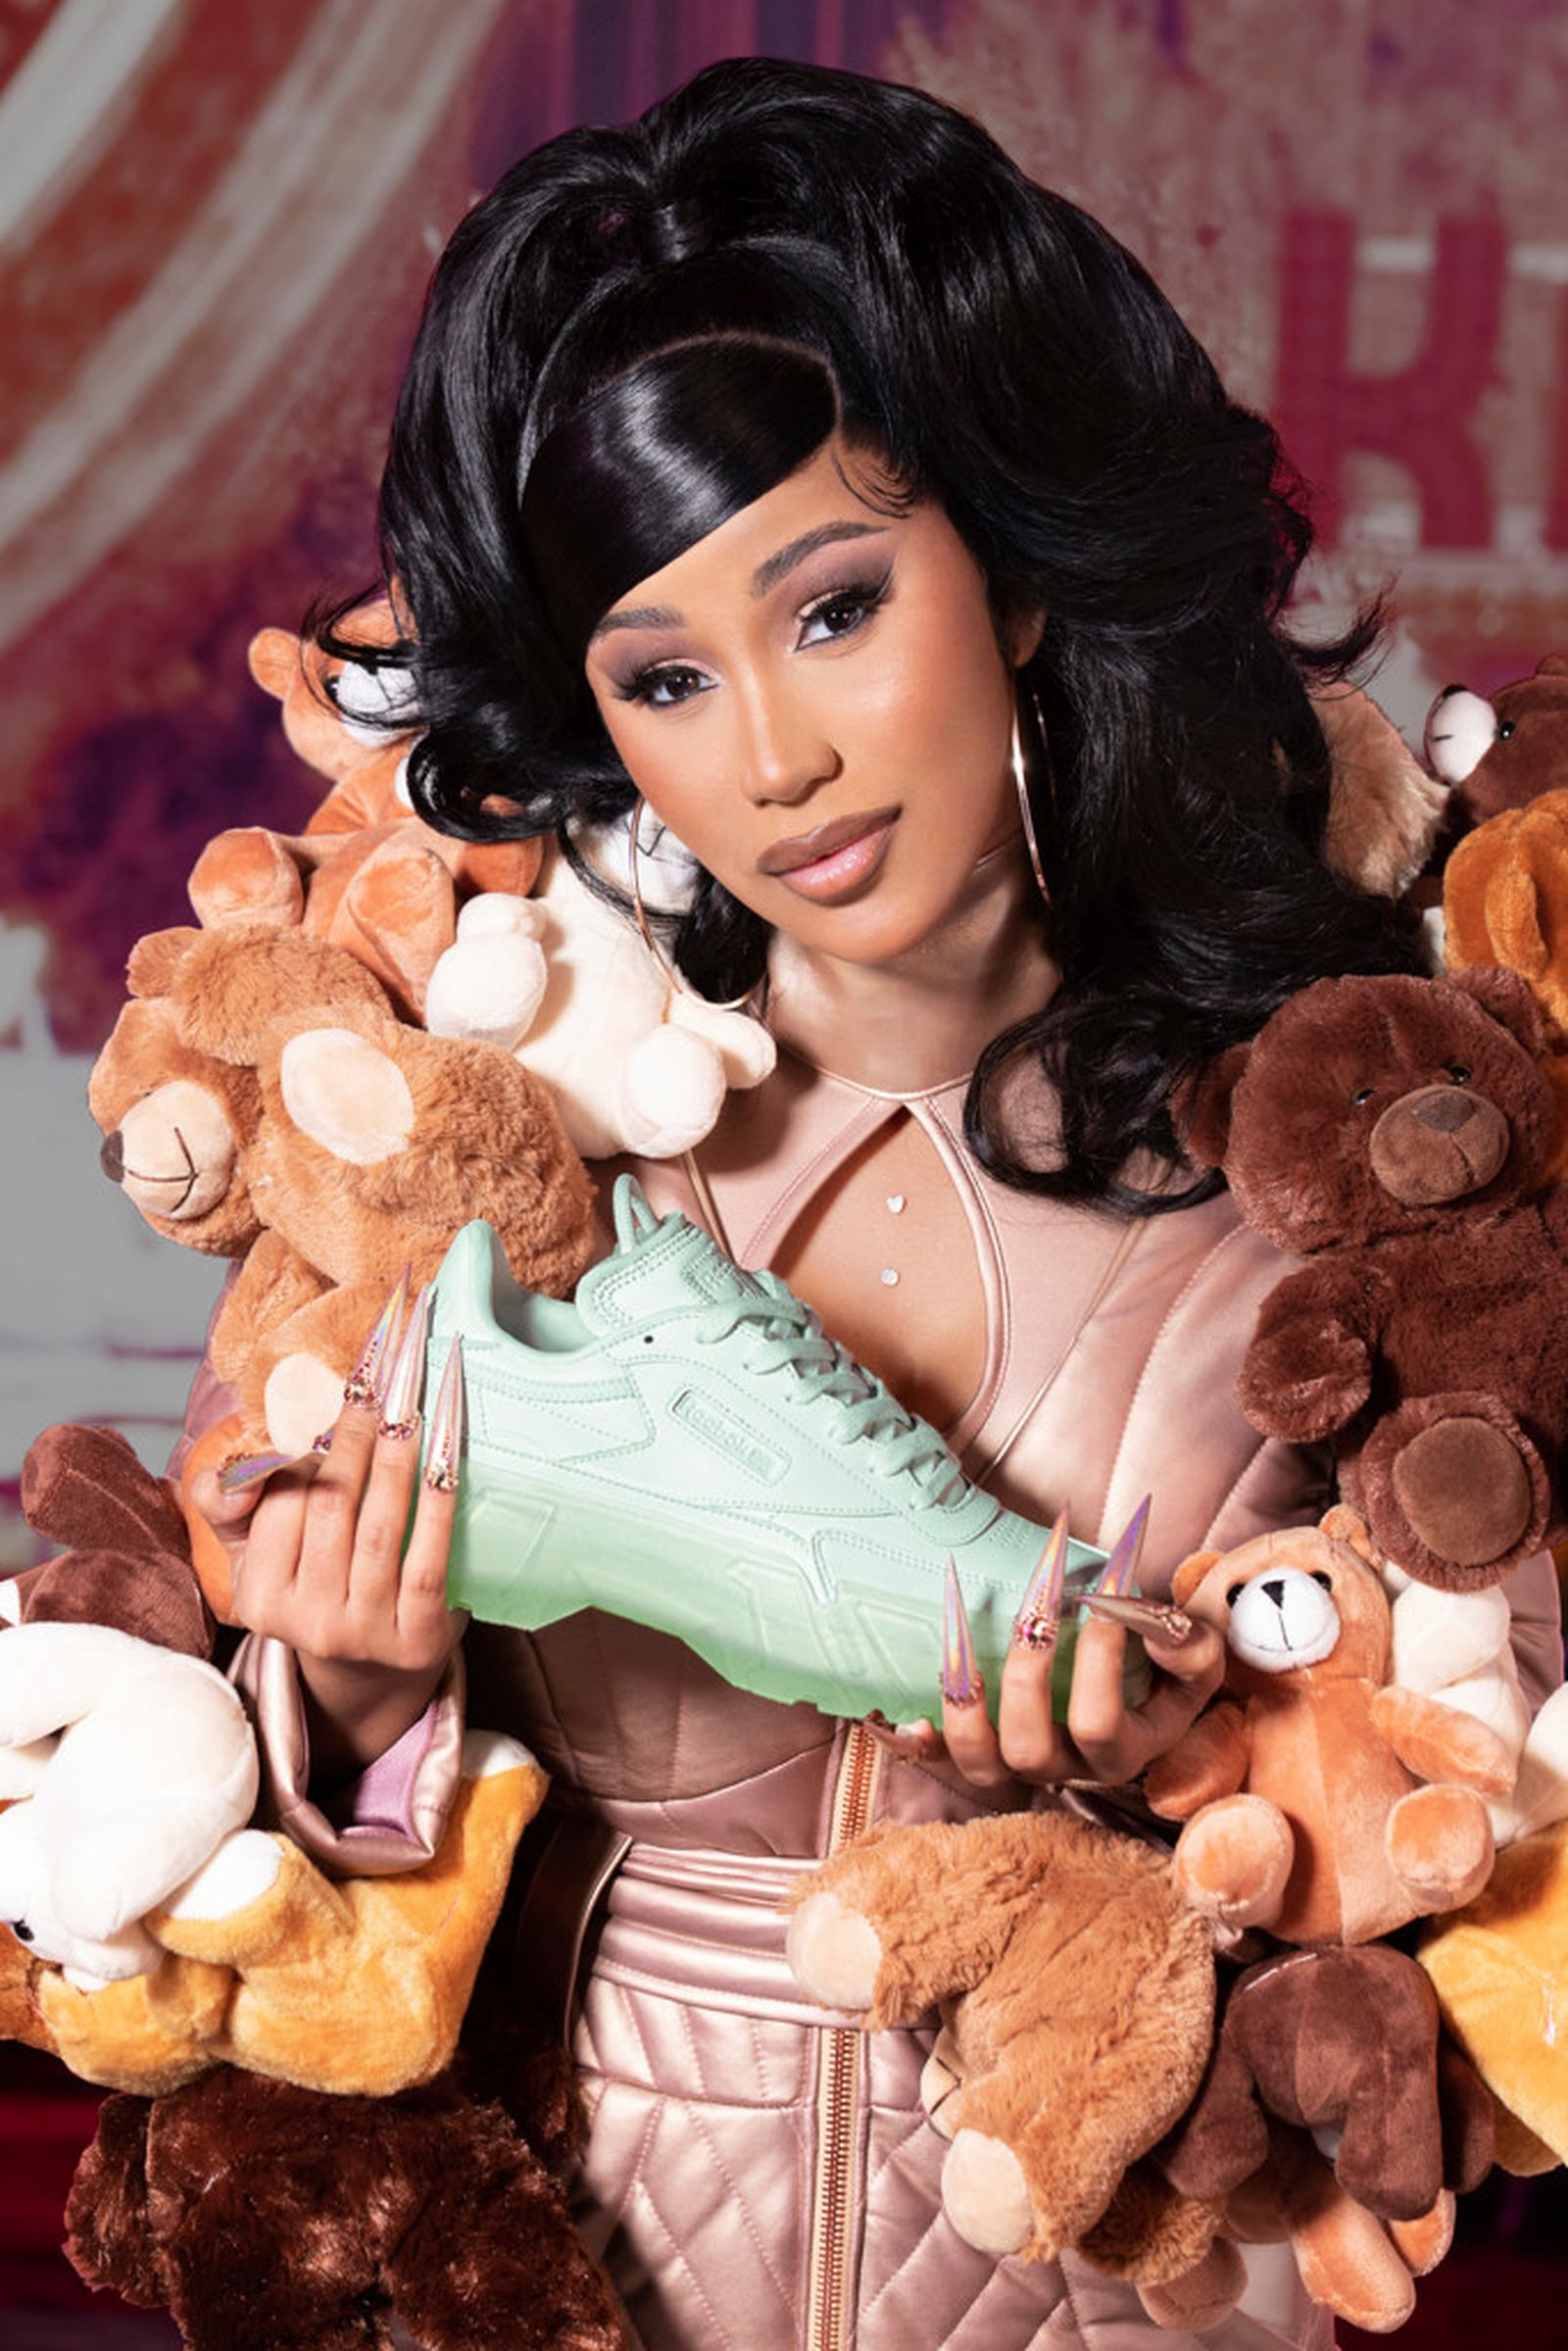 cardi-b-reebok-mommy-and-me-sneaker-collaboration- (3)